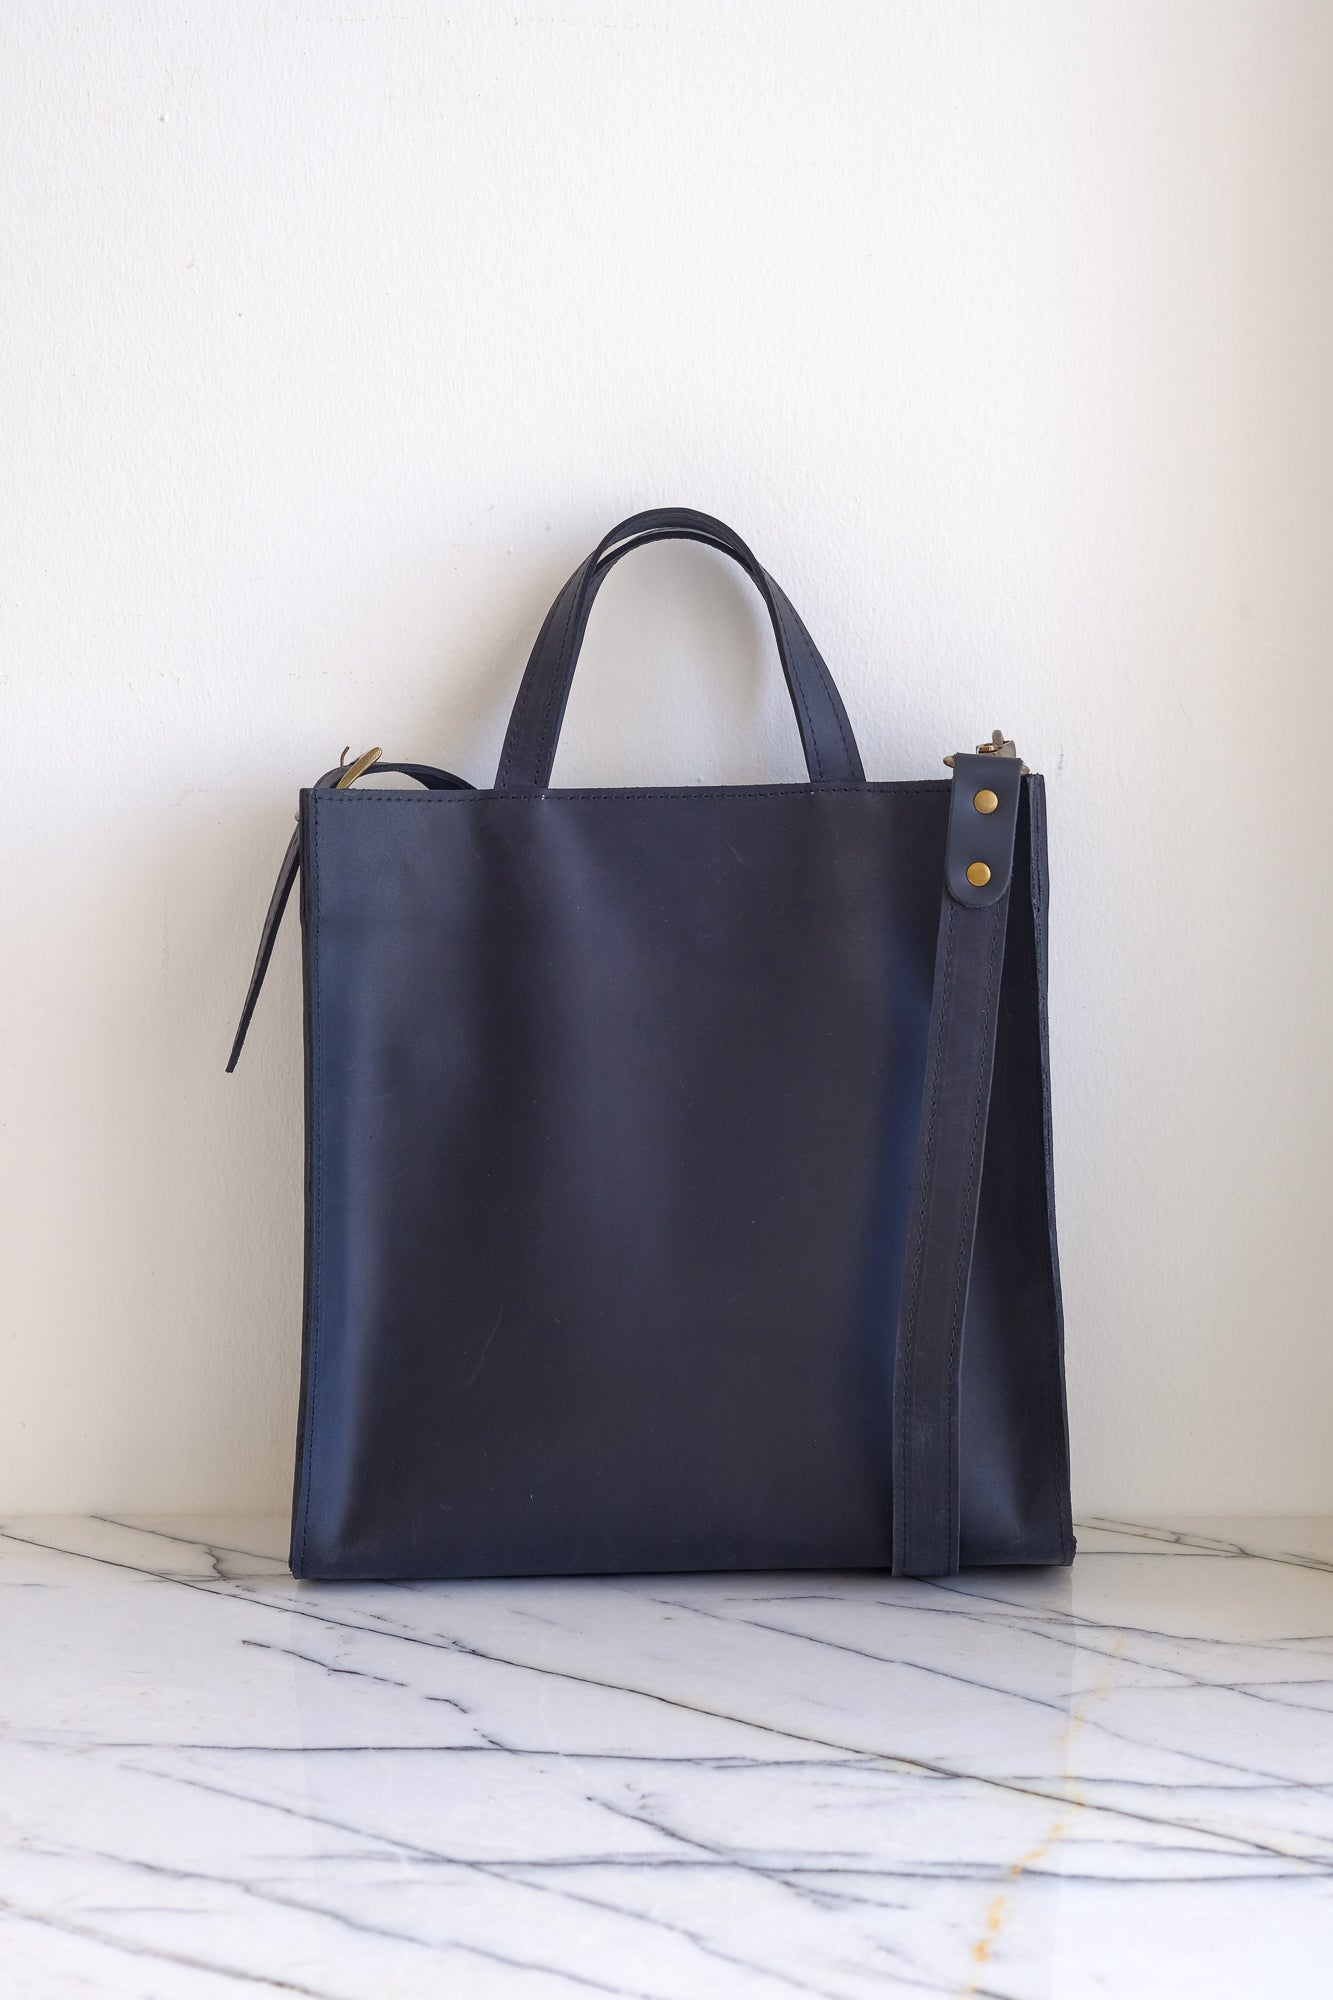 Fermuarlı Tote Bag Small